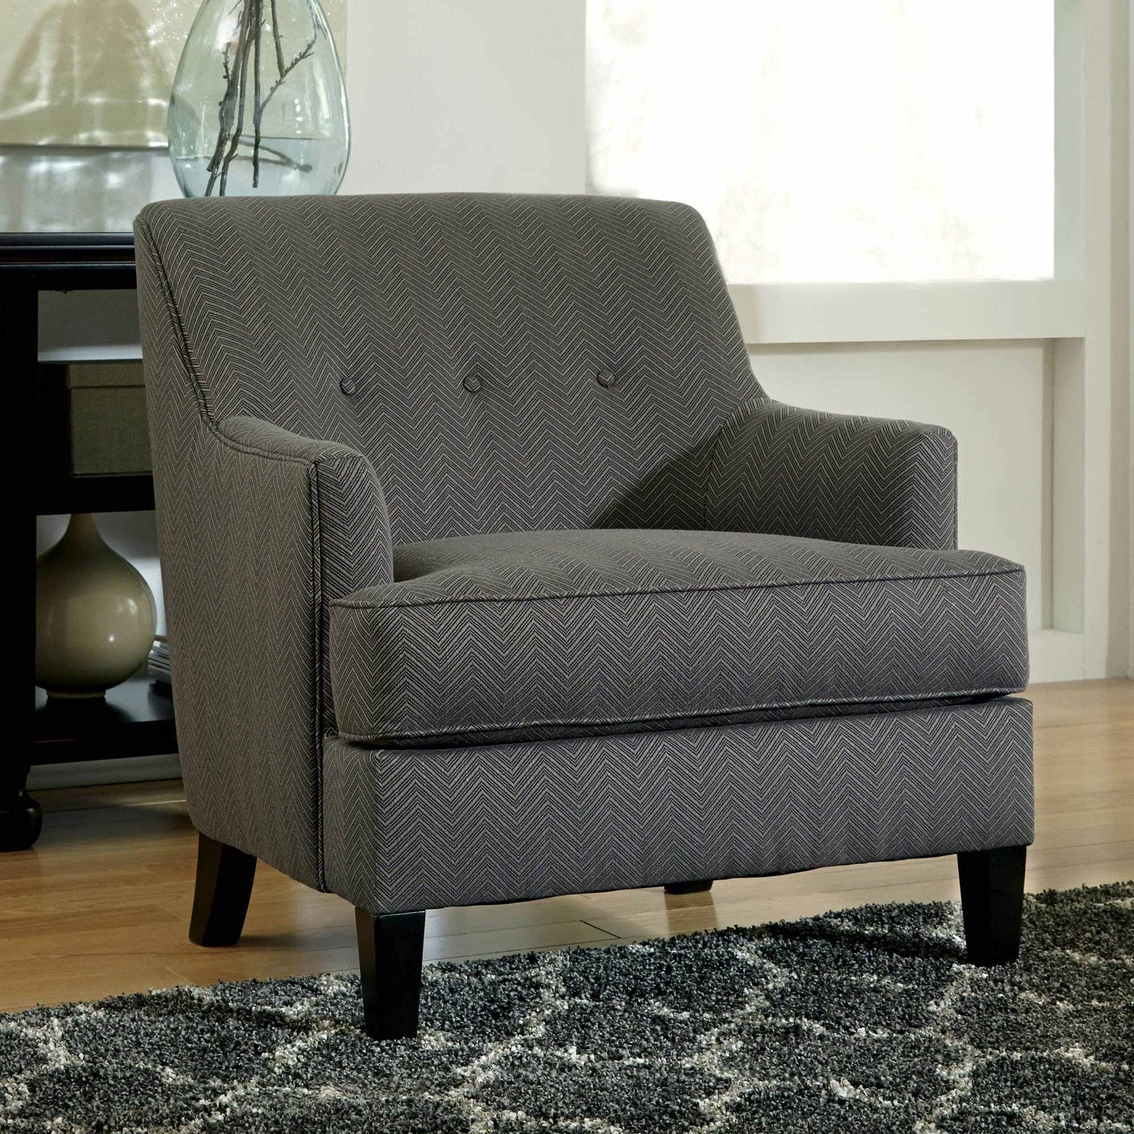 Accent Chairs Ashley Furniture Signature Design By Ashley Crislyn Accent Chair Ashley Furniture